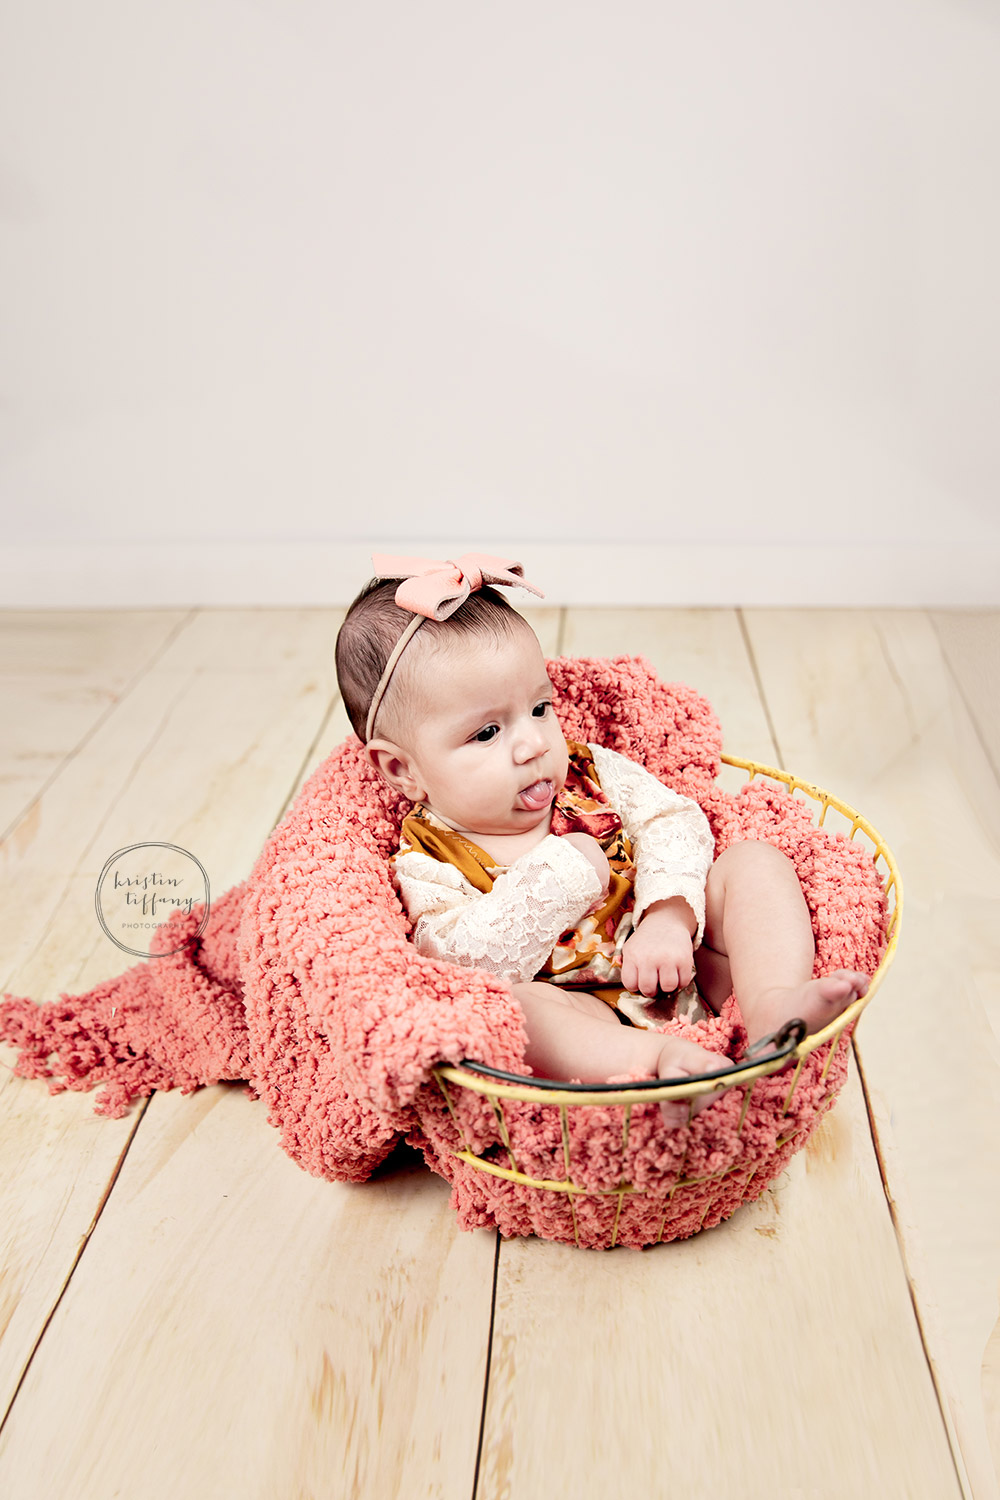 a photo from a baby photo session with Kristin Tiffany Photography